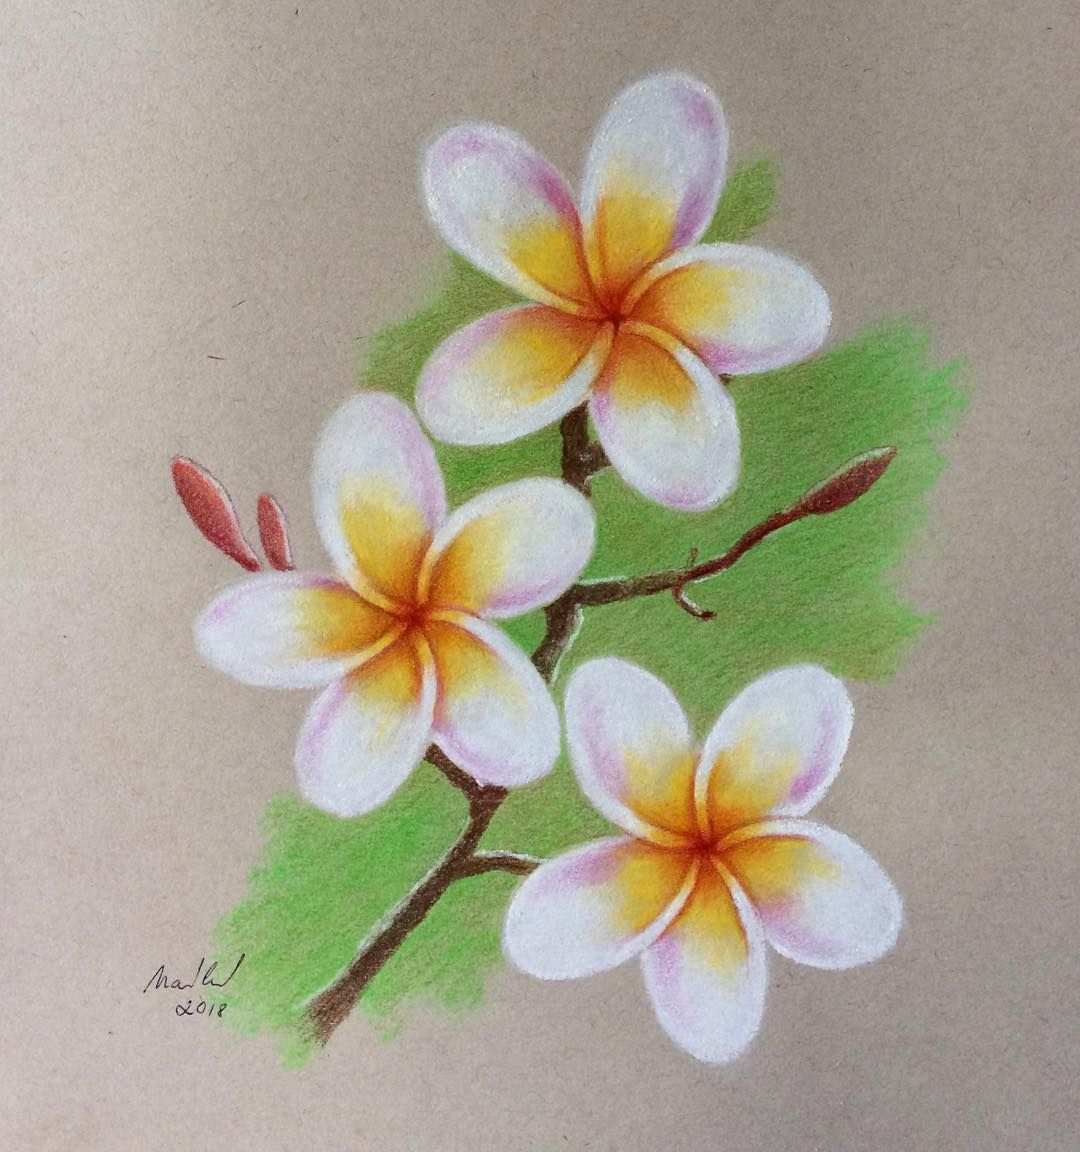 Pin By Fefe Scimone On Disegni Flower Drawing Flower Art